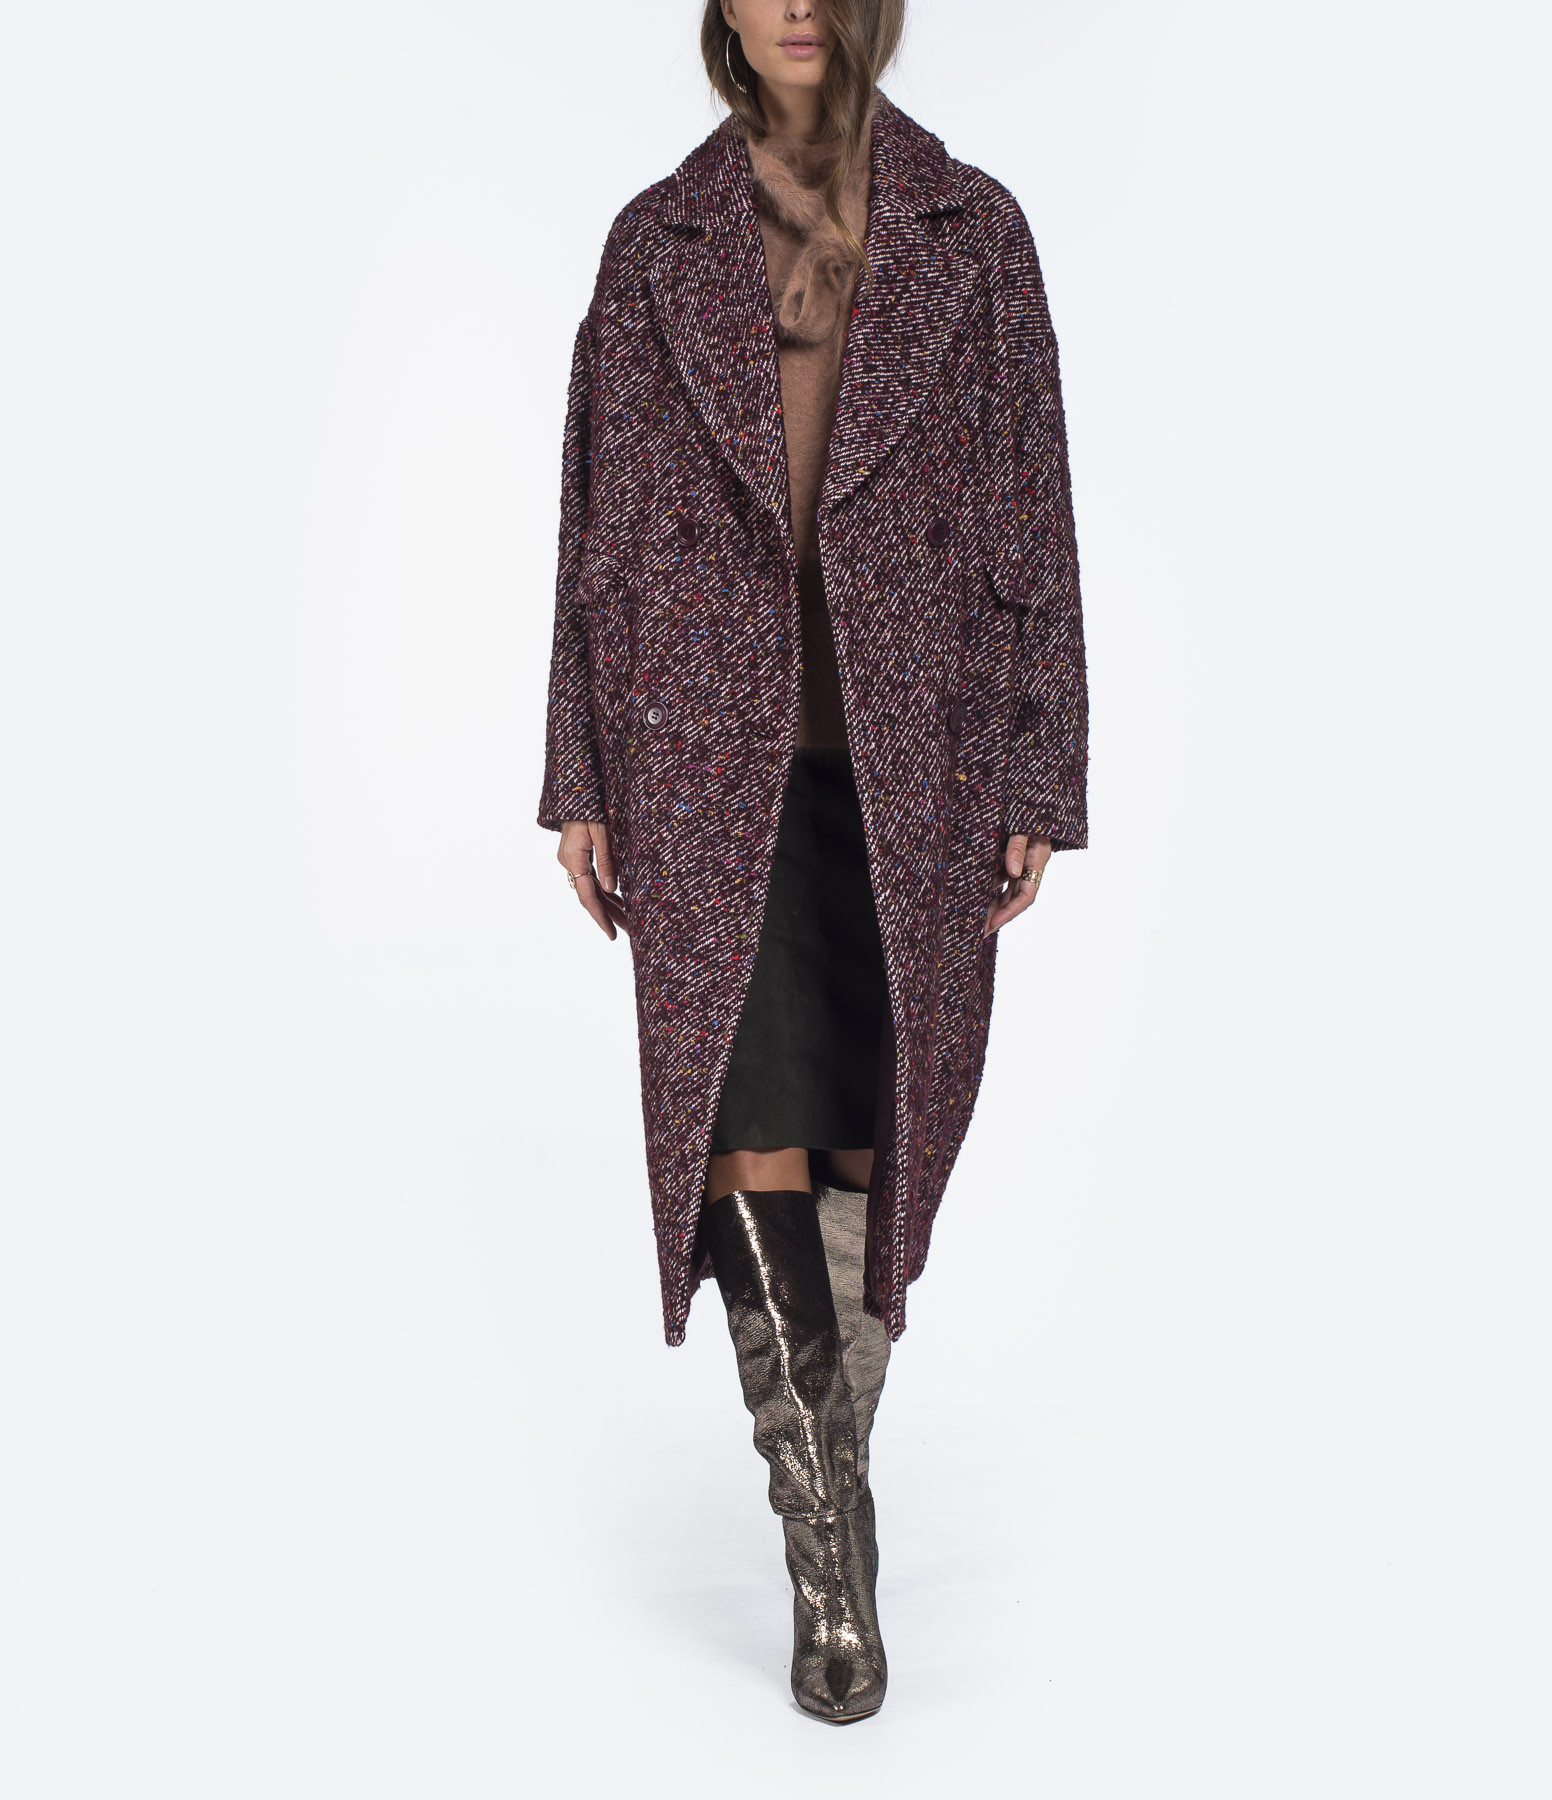 ULLA JOHNSON - Manteau Frances Marron